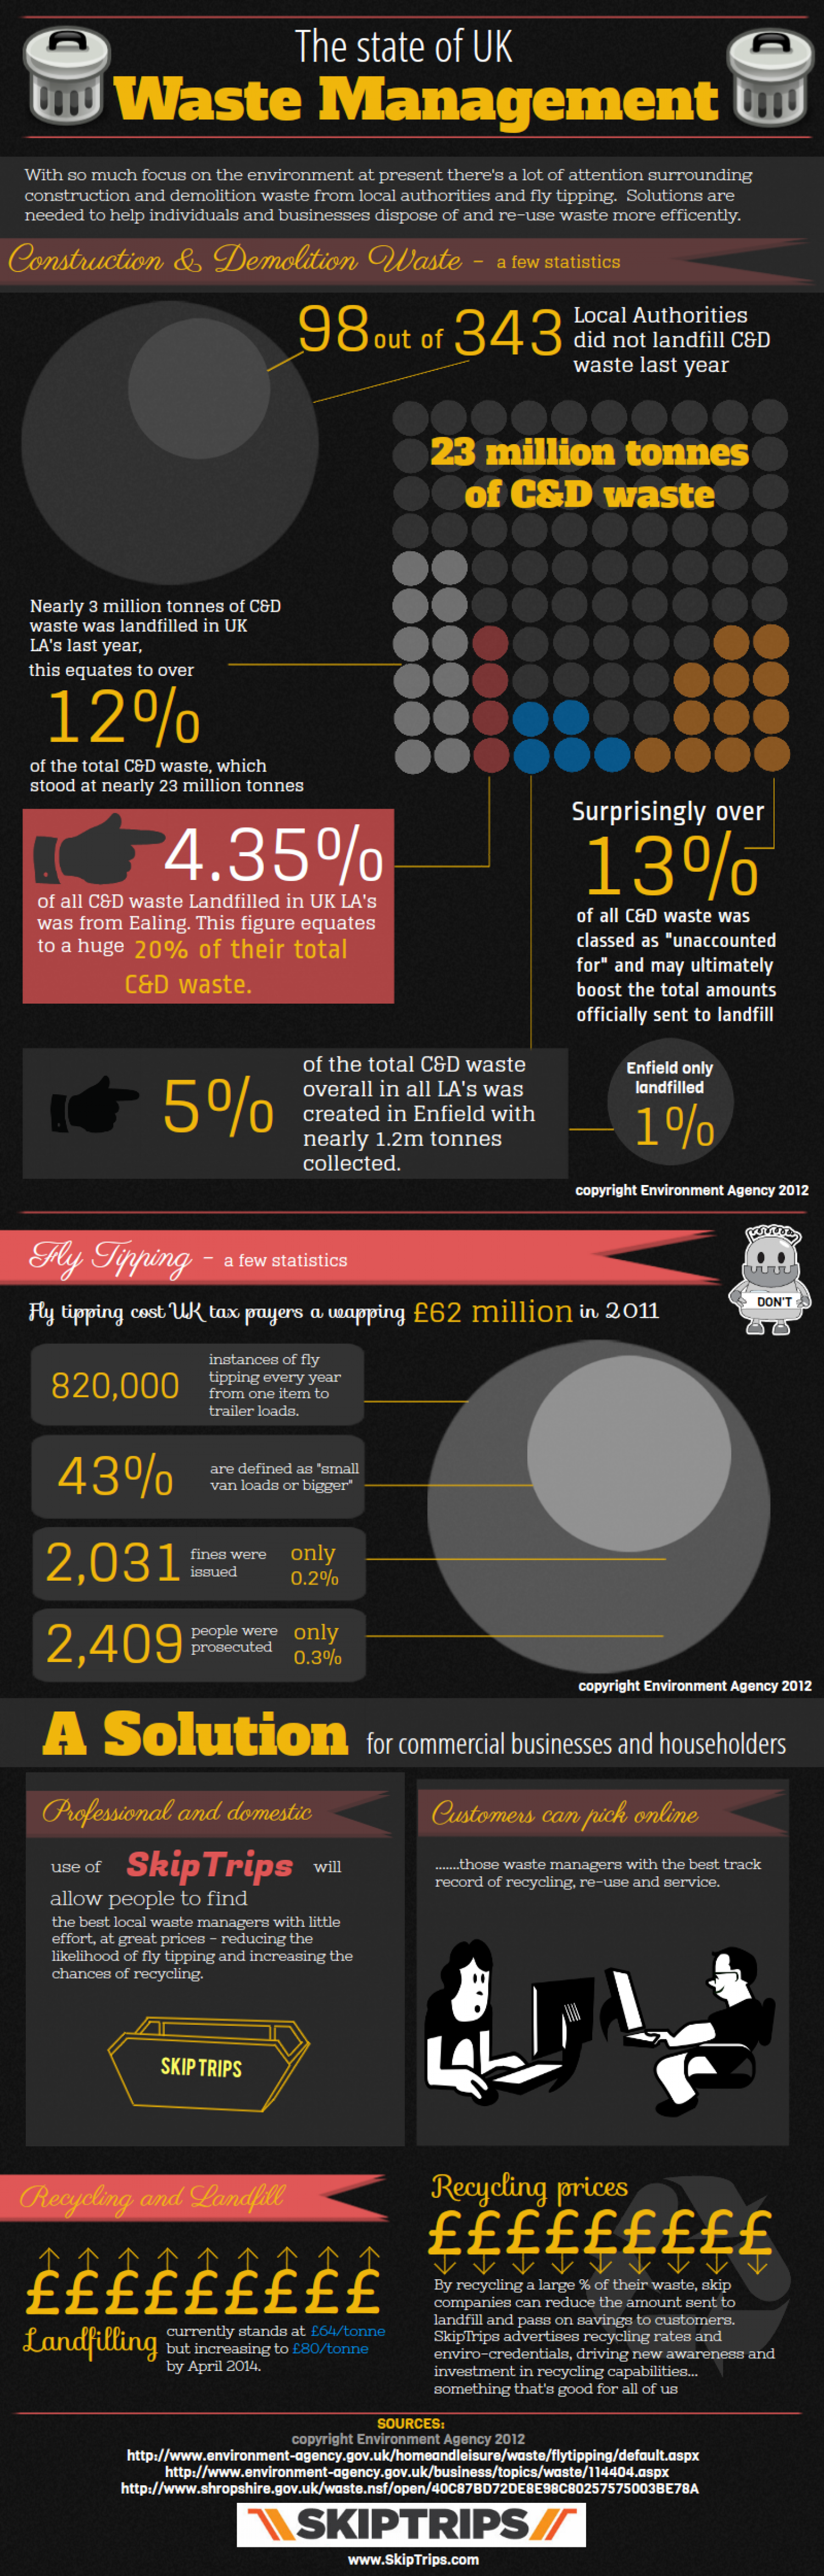 The State of UK Waste Management Infographic